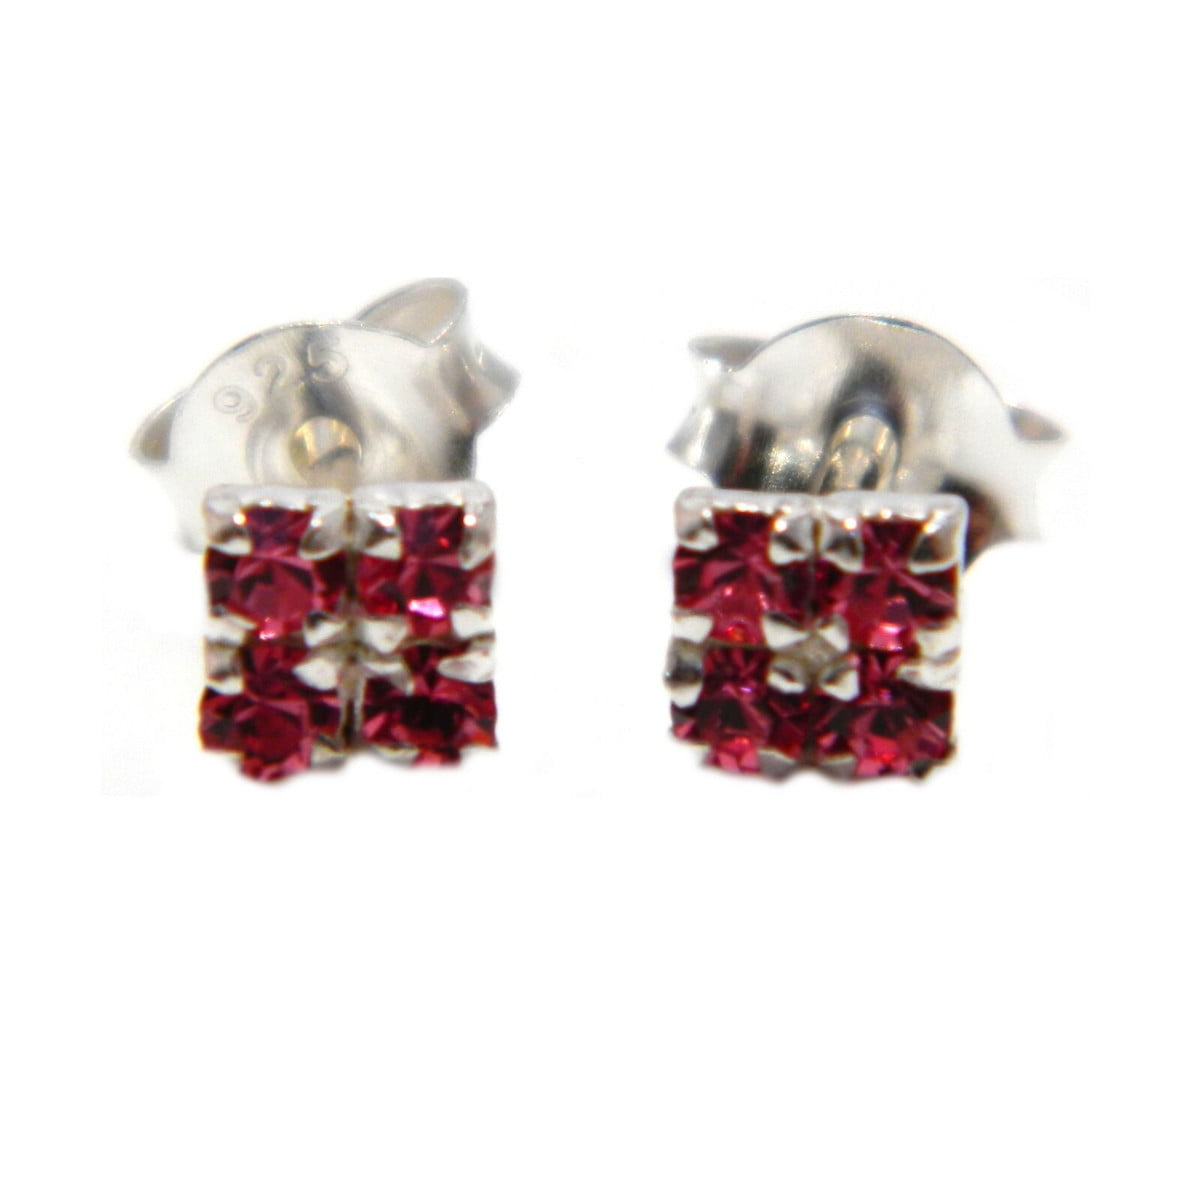 4 mm pink coloured crystal square stud earrings in sterling silver